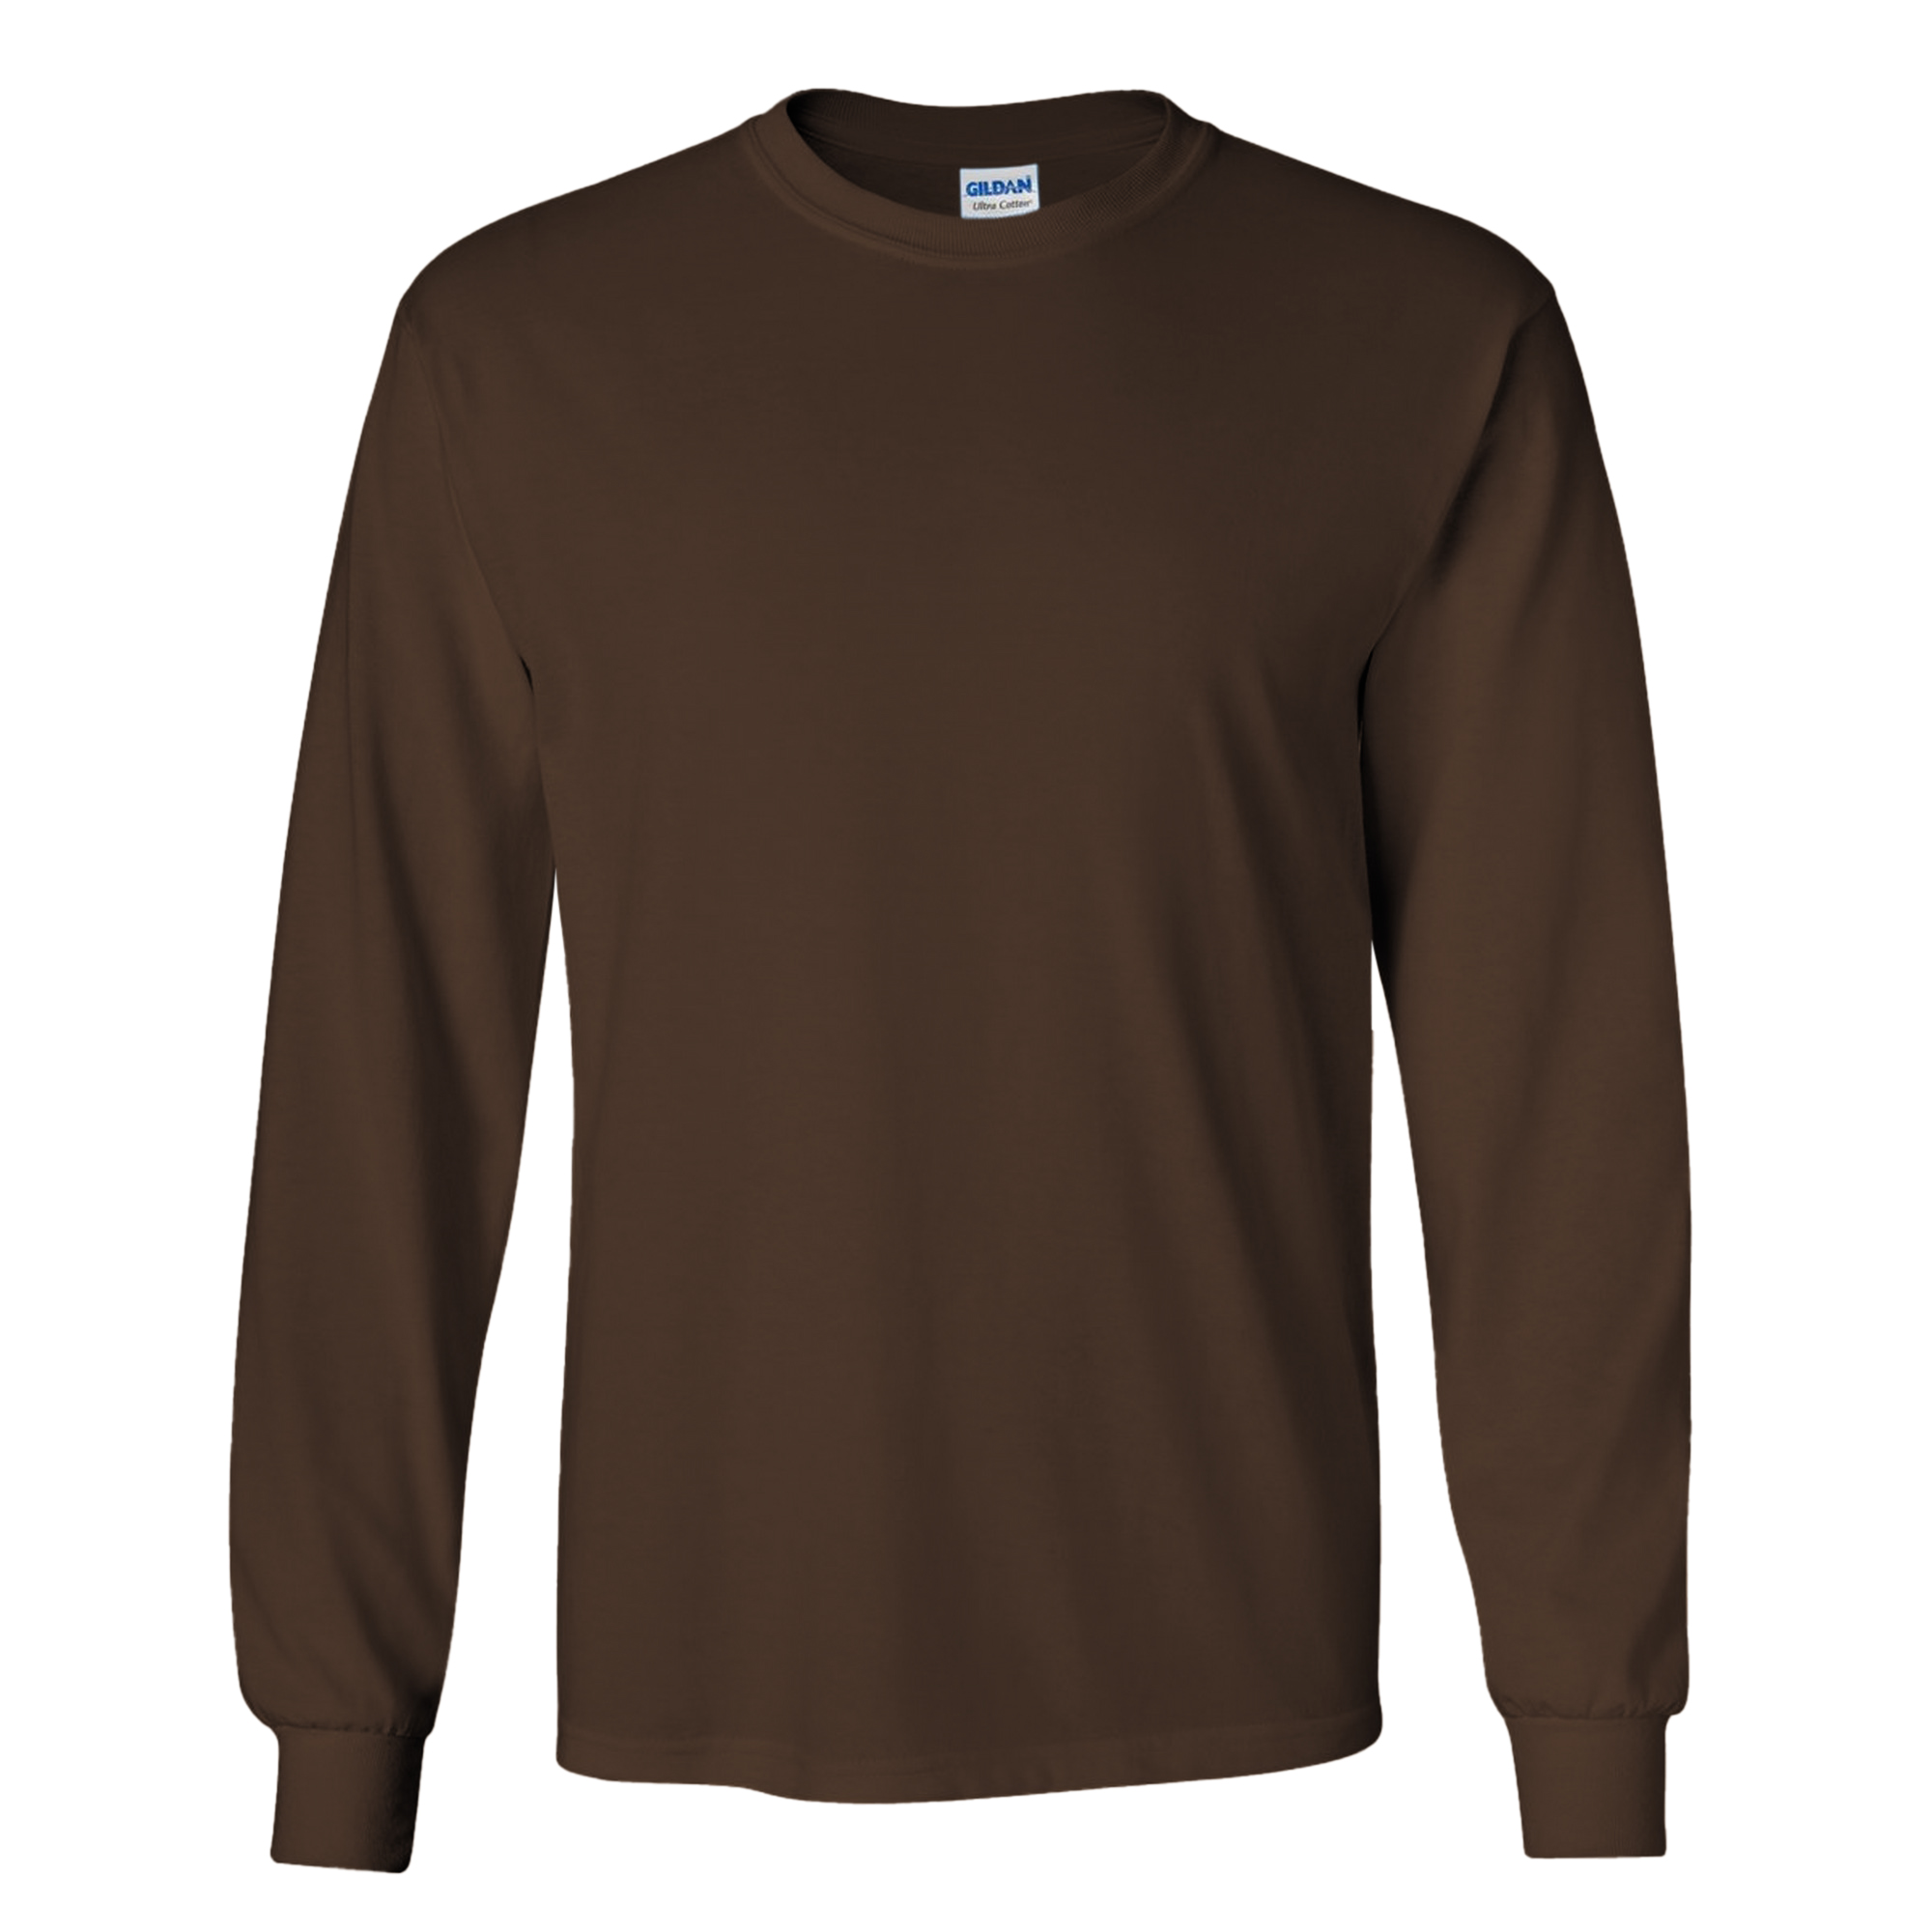 Levi's® Men's Graphic-Print Long Sleeved T-Shirt Calvin Klein Men's Logo Long-Sleeve Cotton T-Shirt $ Free ship at $ Enjoy Free Shipping at $49! See exclusions. Free ship at $ more like this. 2 colors. Volcom Men's Volcomosphere Long Sleeve T-Shirt, Created for Macy's.